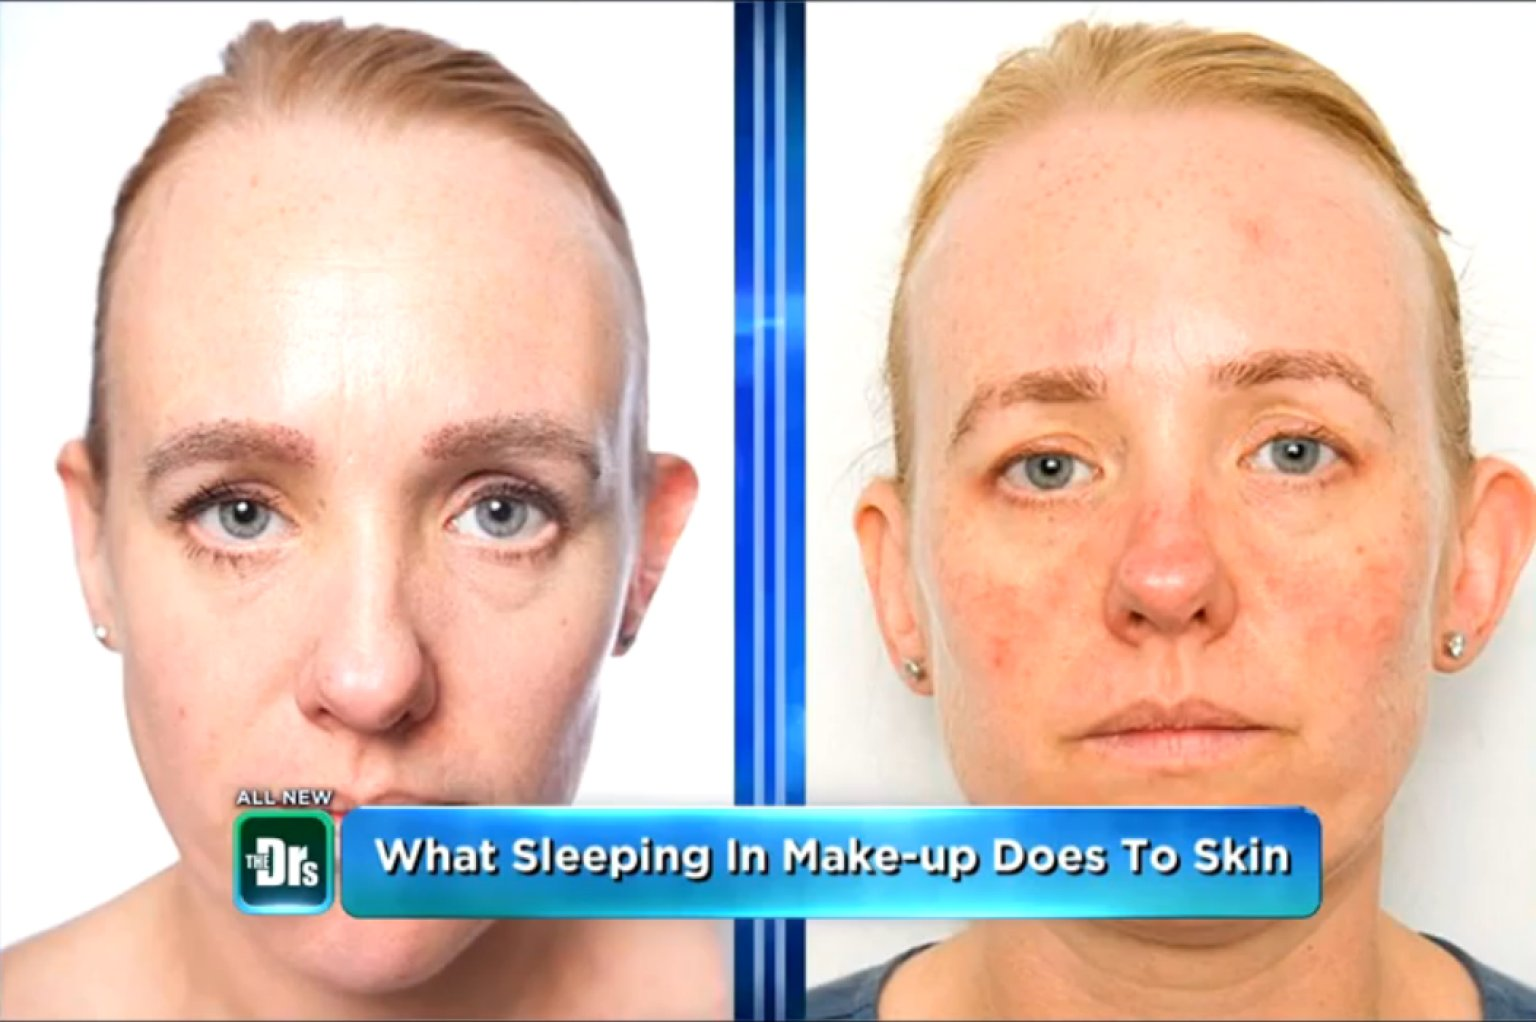 Does makeup ruin your skin